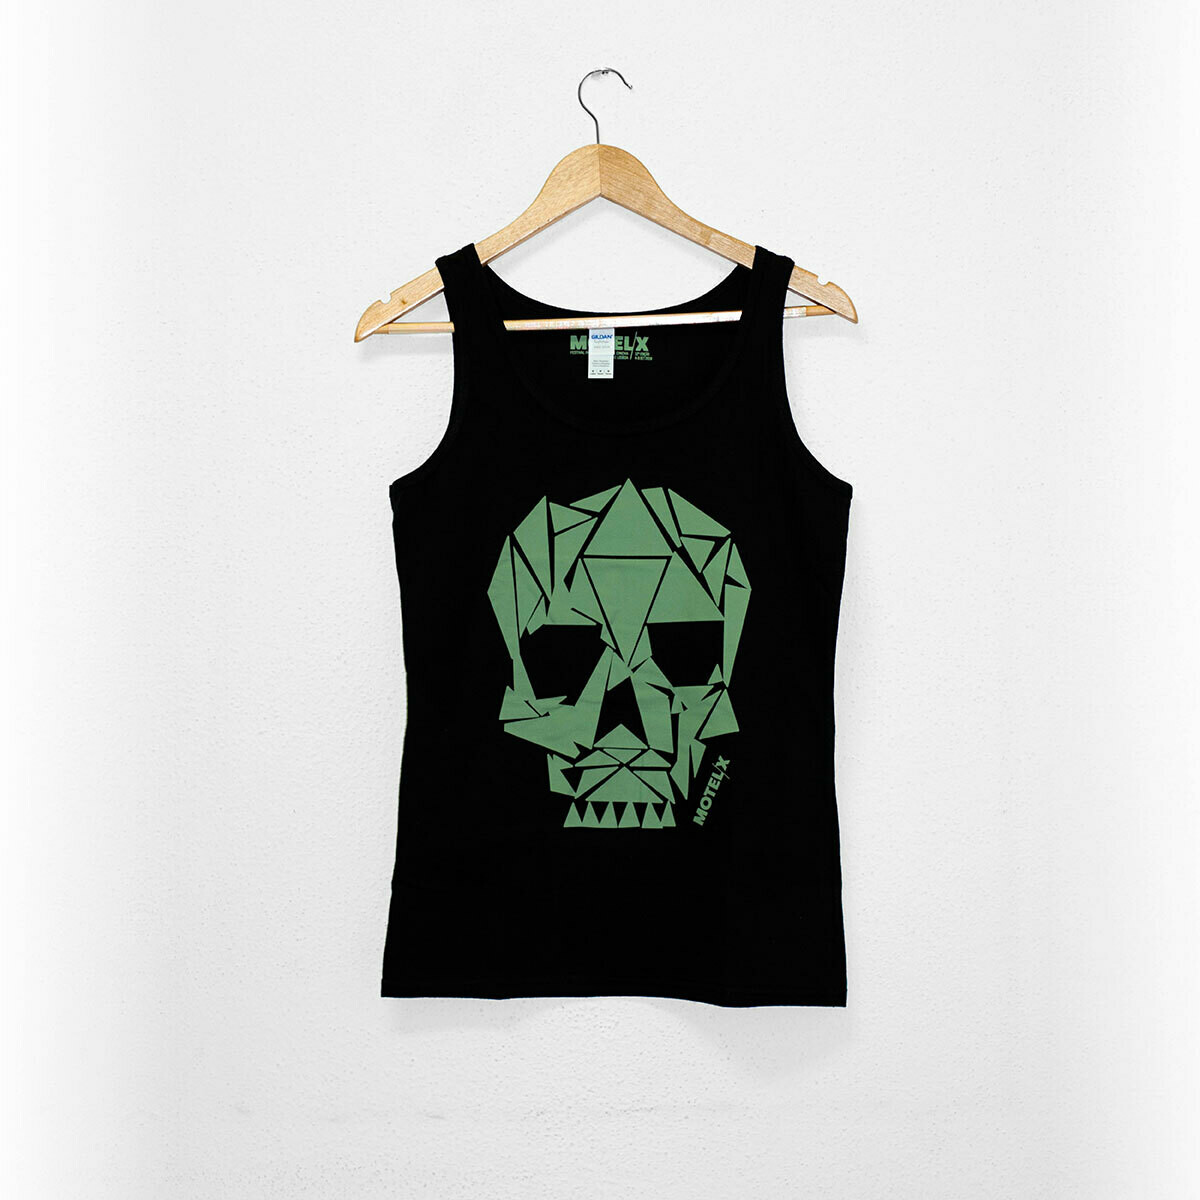 MOTELX 2018 Special Edition Tank Top Ladies / Skull / BLACK